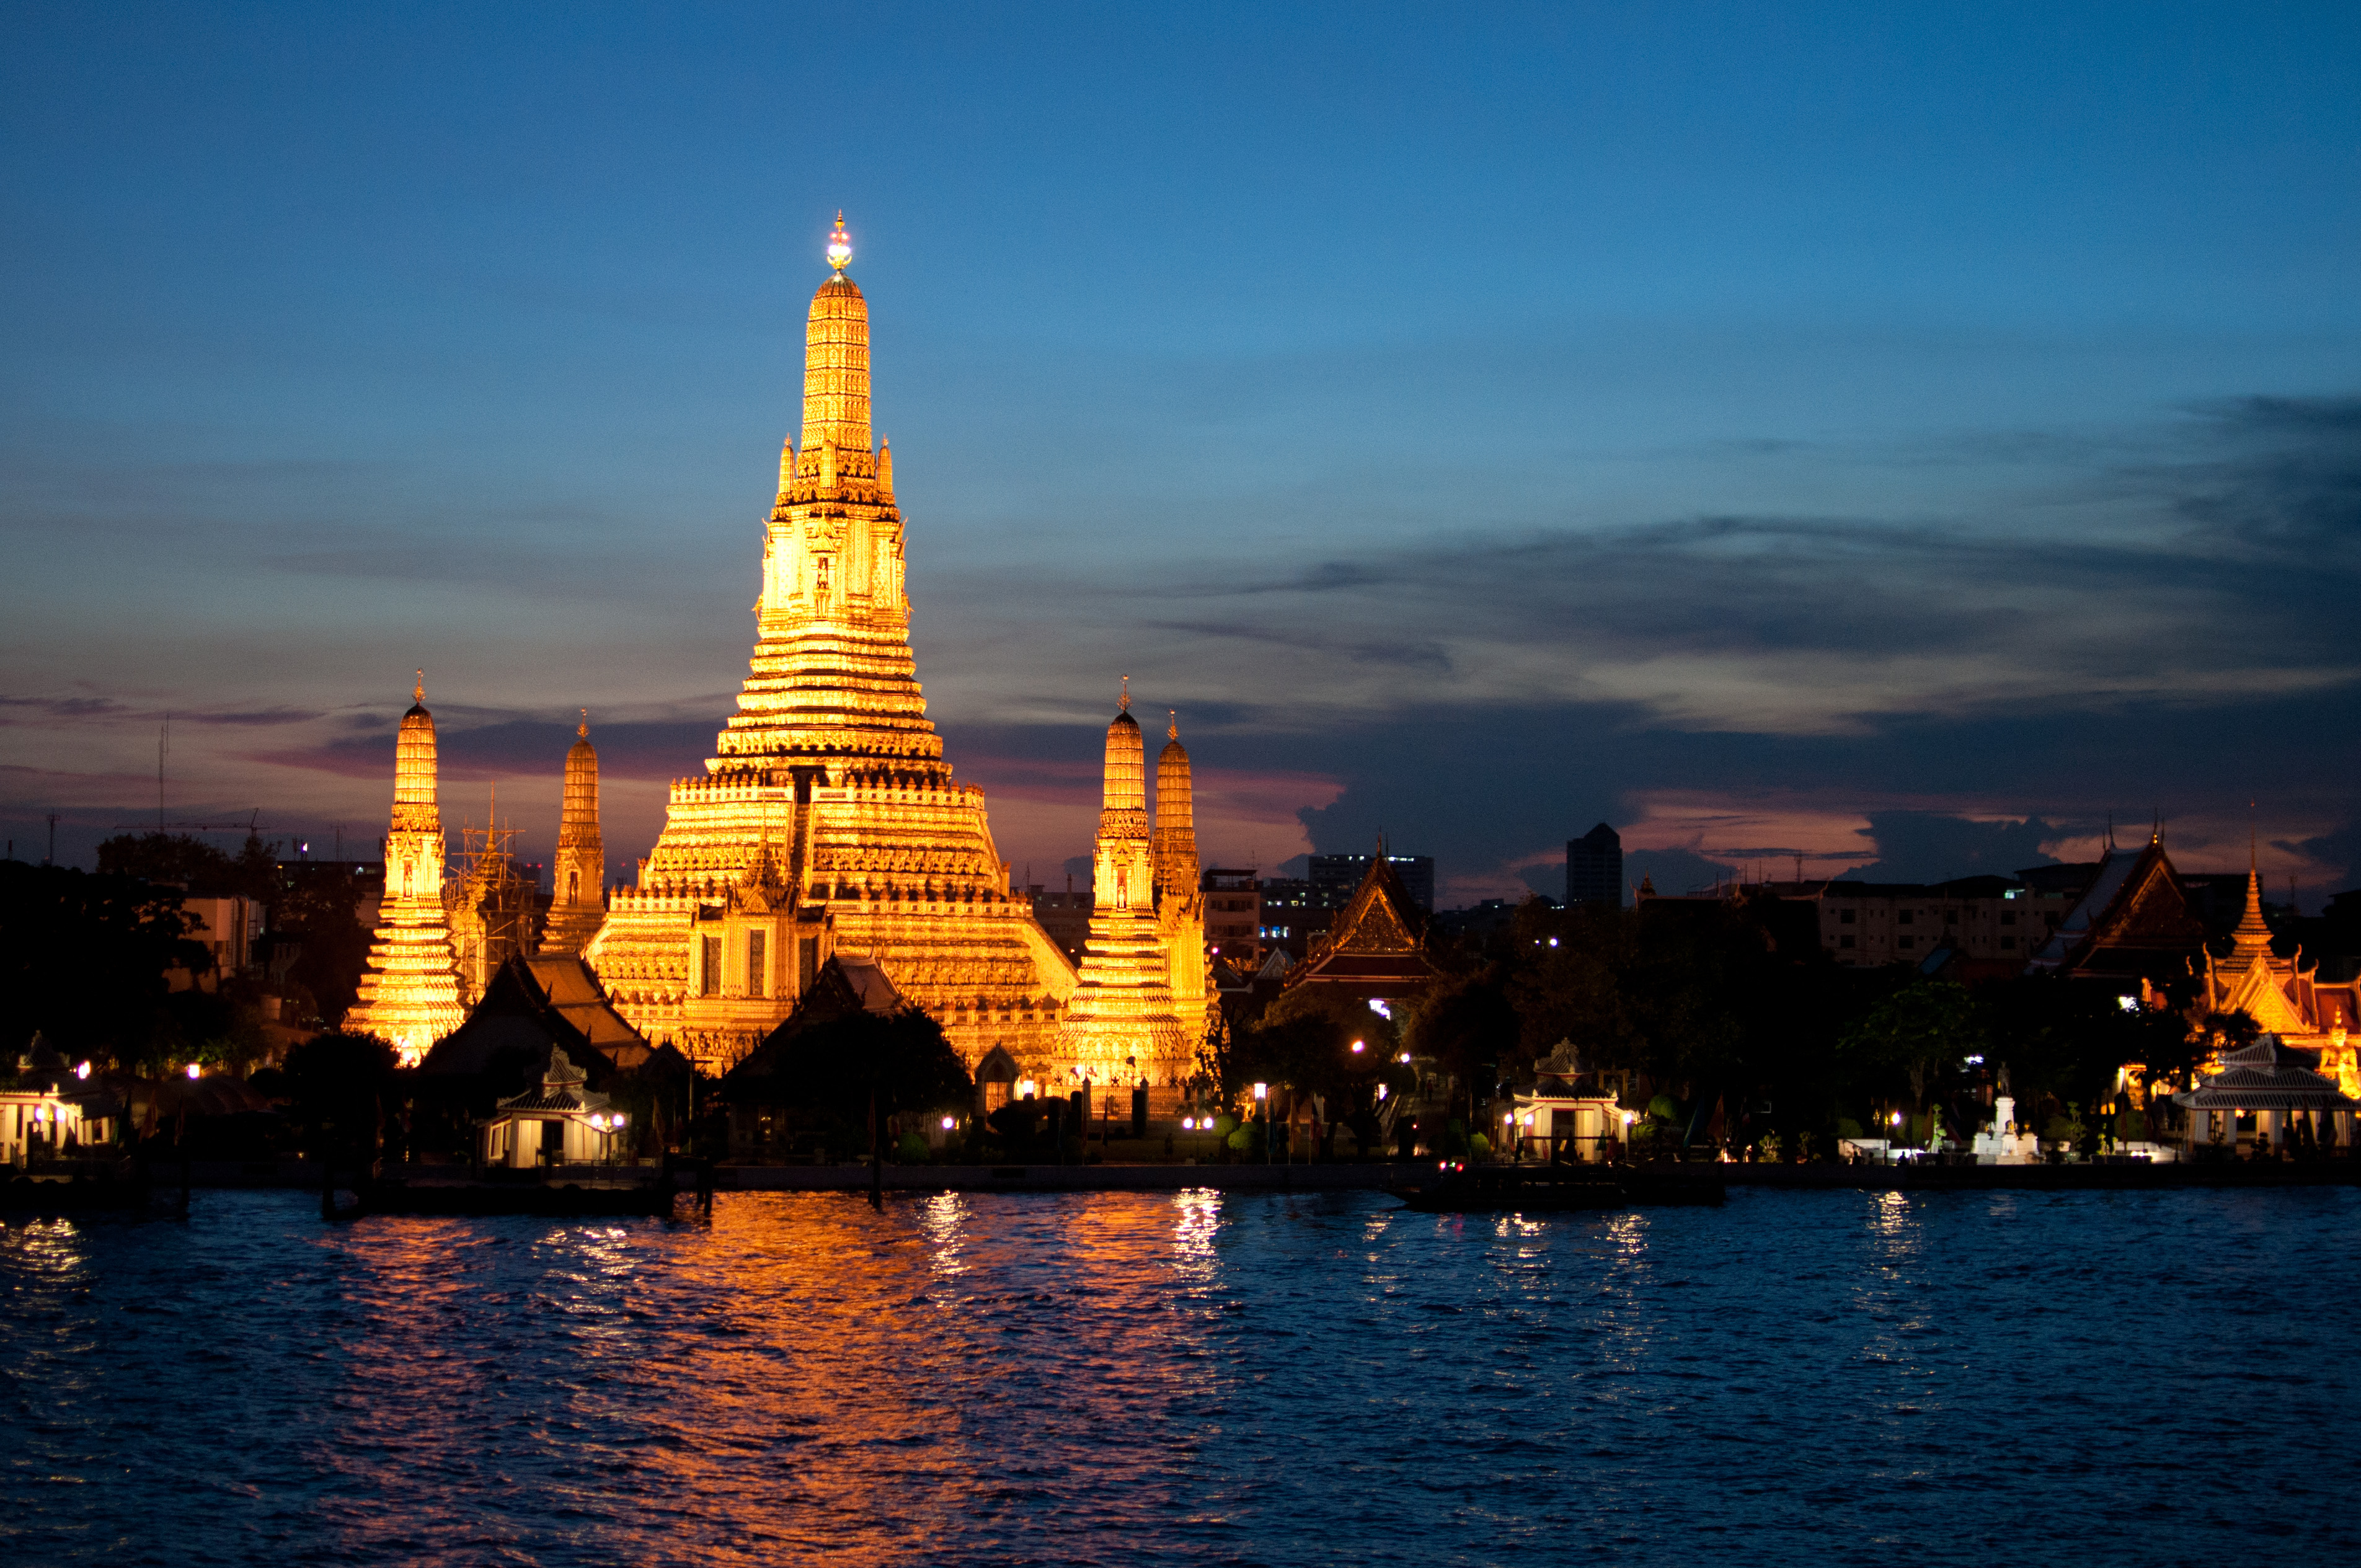 Wat Arun, the Temple of the Dawn, shines across the Chao Phraya River in Bangkok, Thailand.